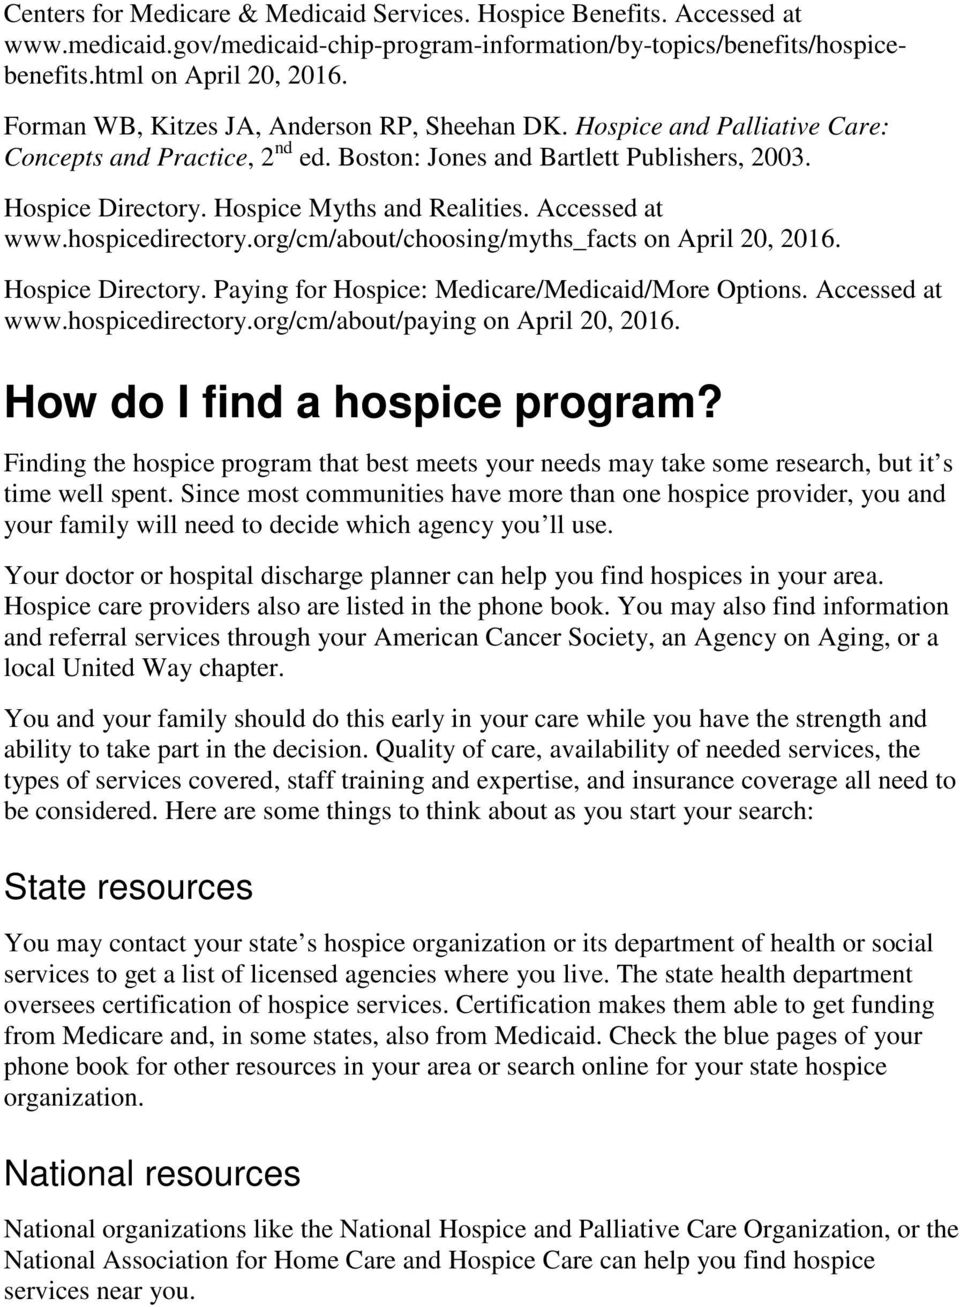 Accessed at www.hospicedirectory.org/cm/about/choosing/myths_facts on April 20, 2016. Hospice Directory. Paying for Hospice: Medicare/Medicaid/More Options. Accessed at www.hospicedirectory.org/cm/about/paying on April 20, 2016.